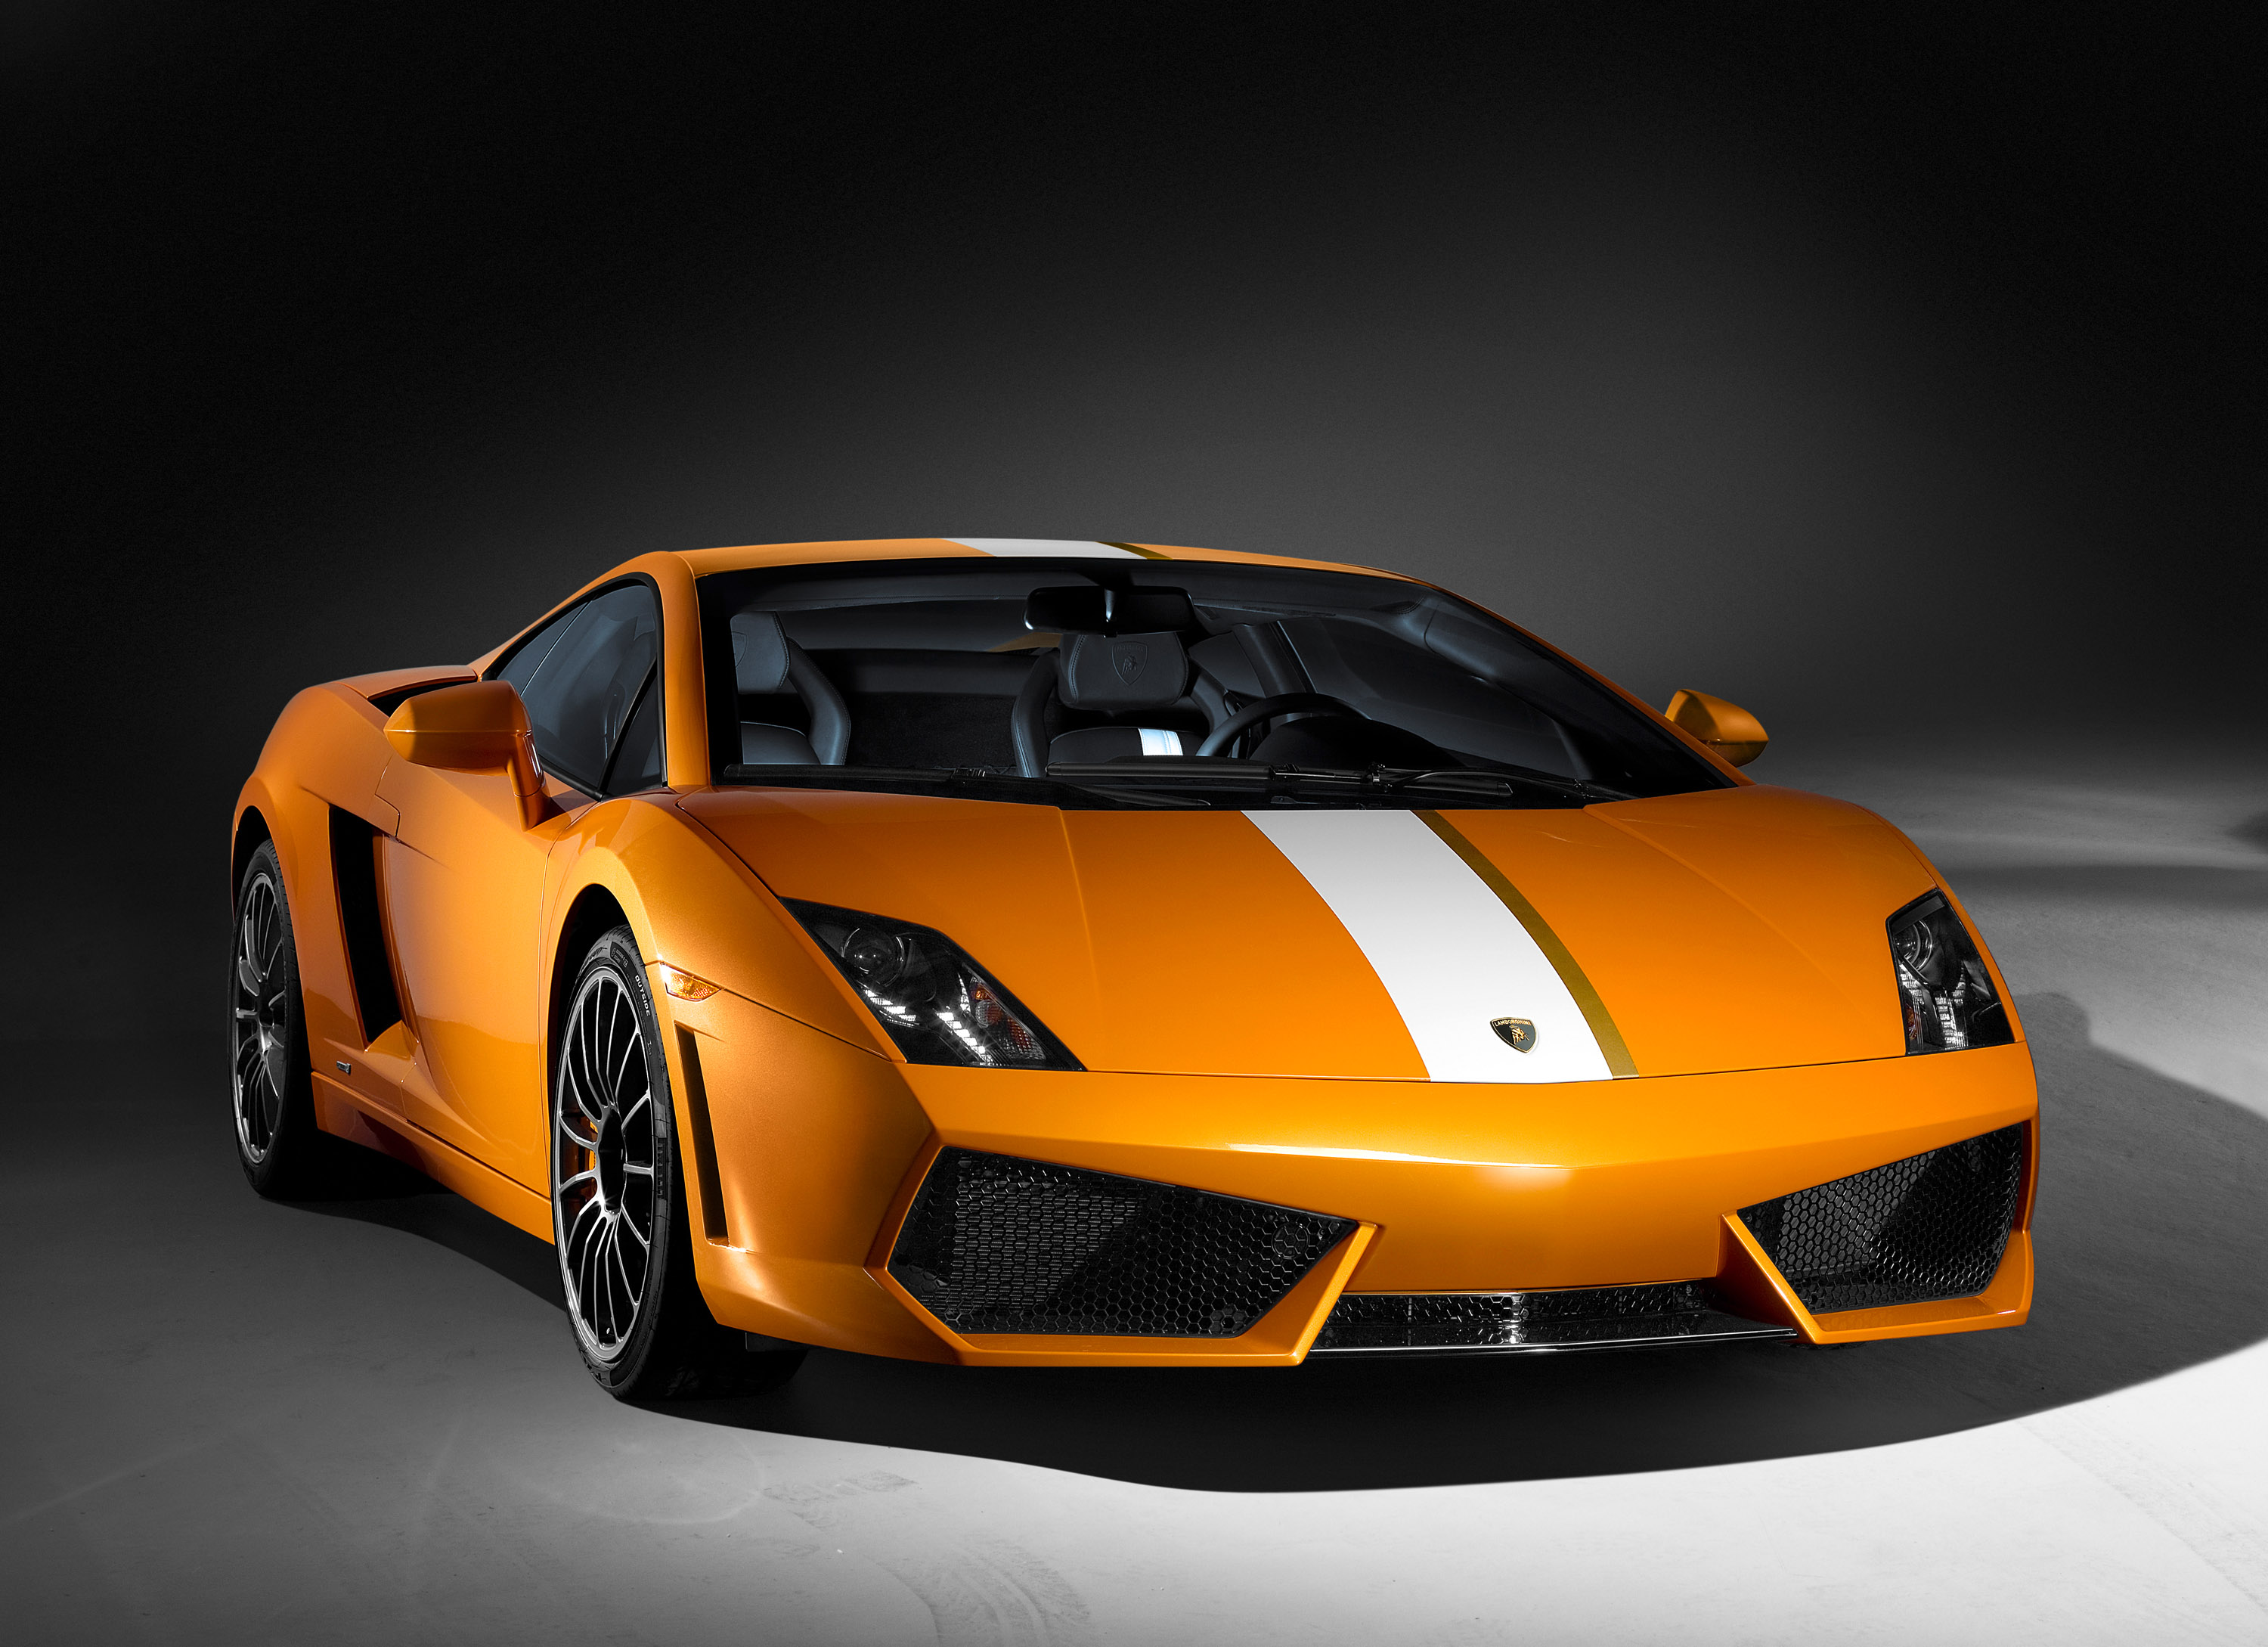 lamborghini gallardo lp 550-2 valentino balboni - absolute fun and